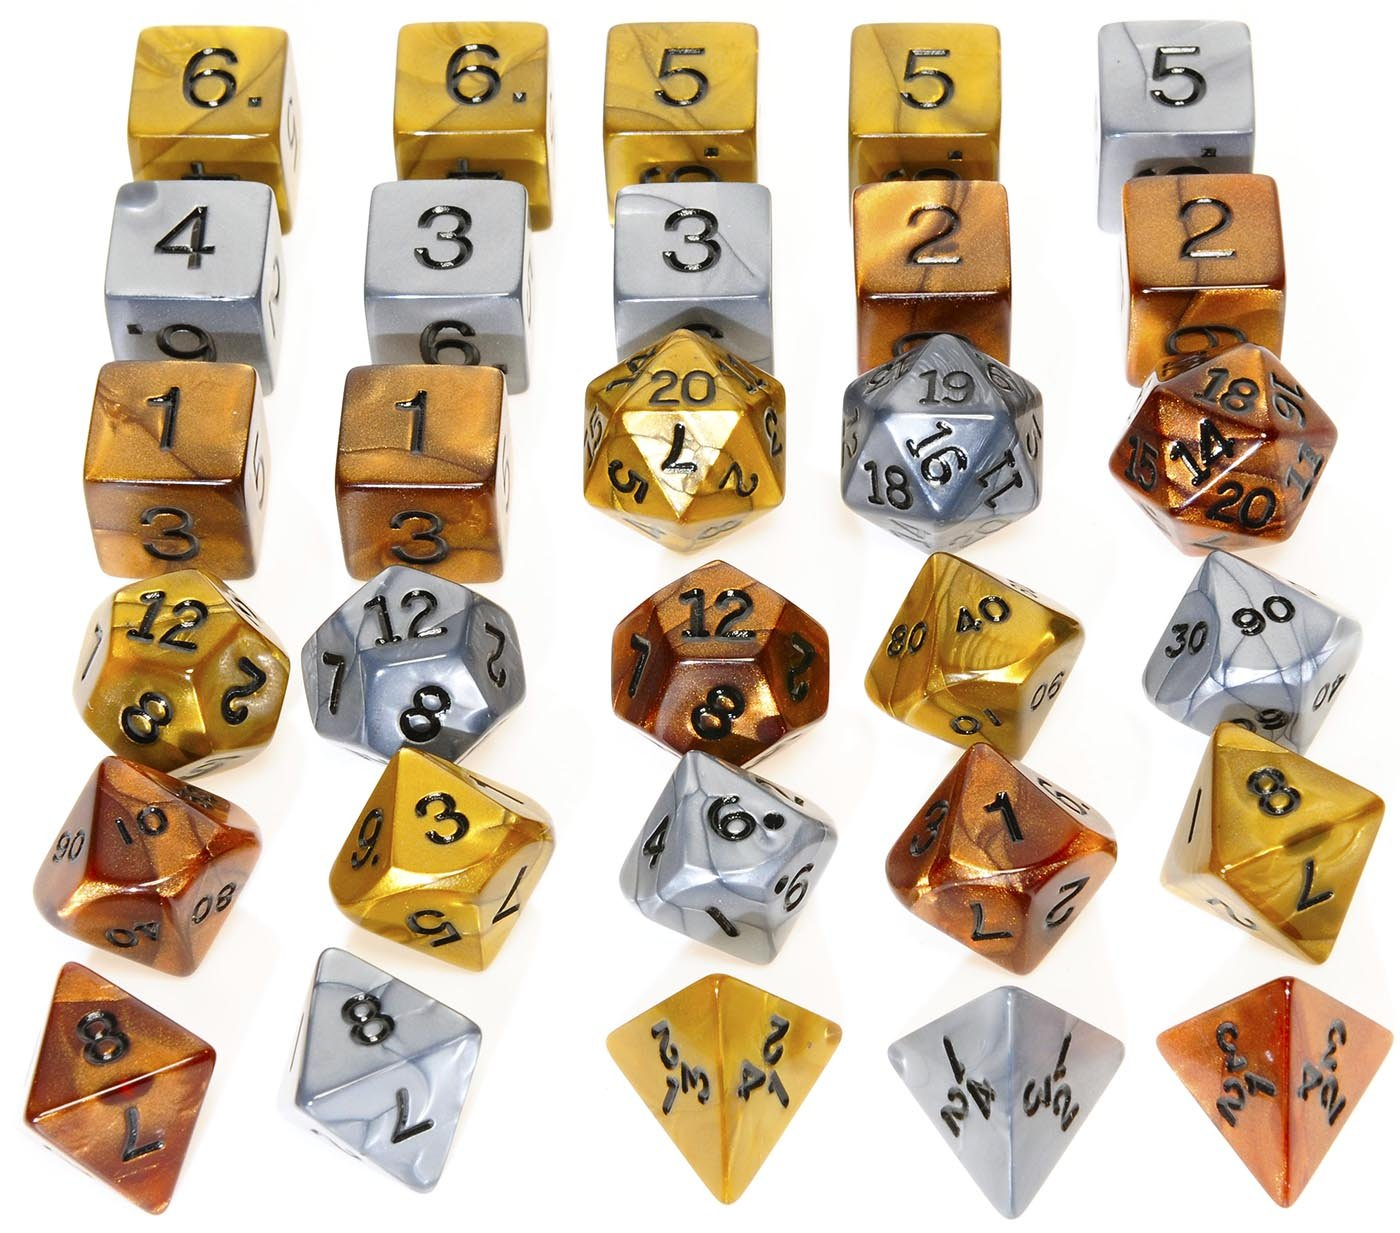 Gold, Silver Bronze Polyhedral Dice _ Set of 30 Dice